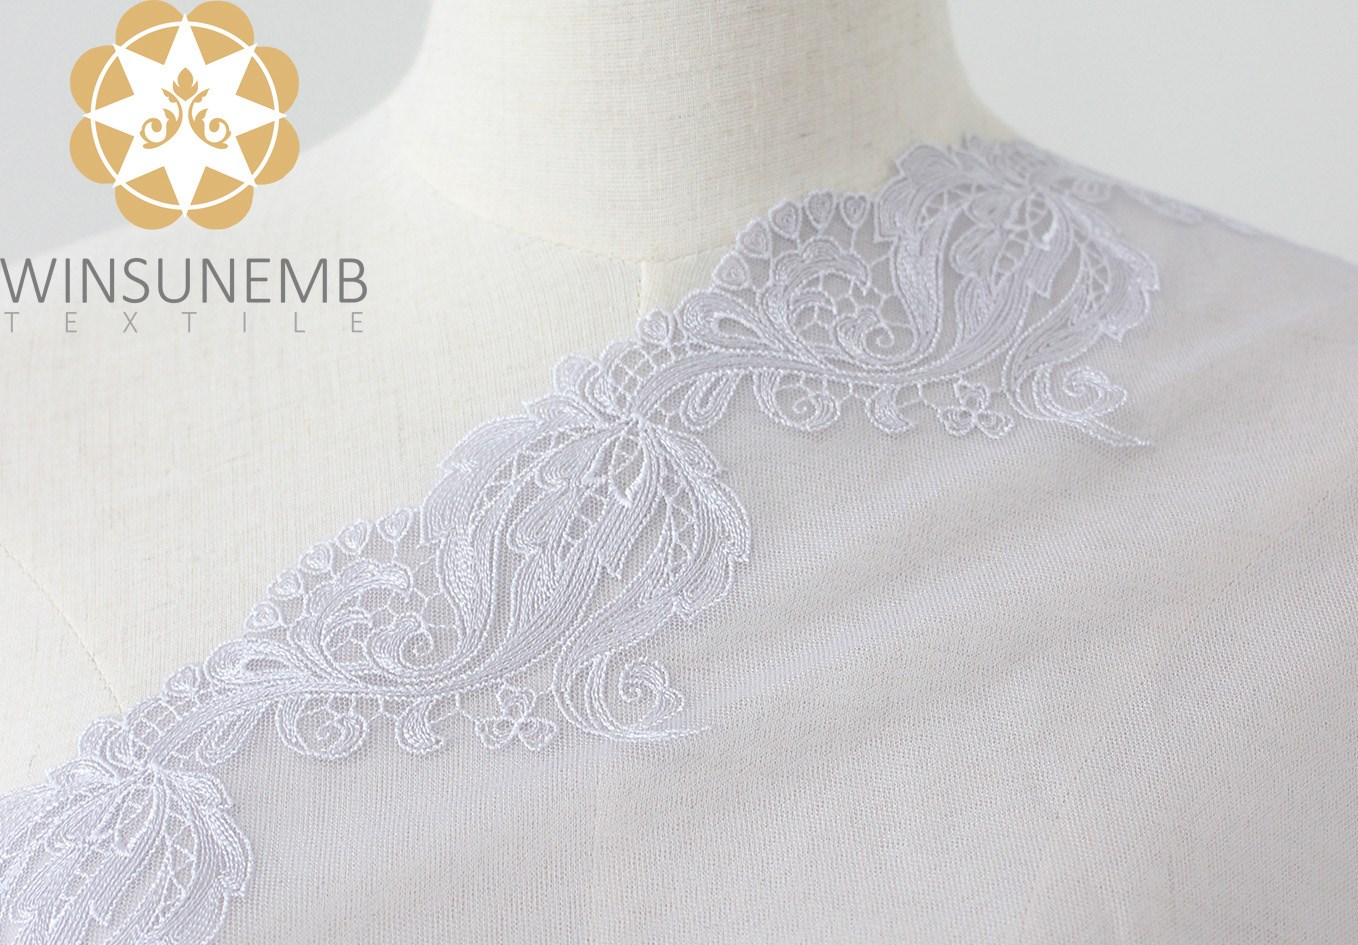 Winsunemb -Lace Fabric | Surrounded By Love Mermaid Single-wave Embroidery Lace Trimming 21 Cm-2